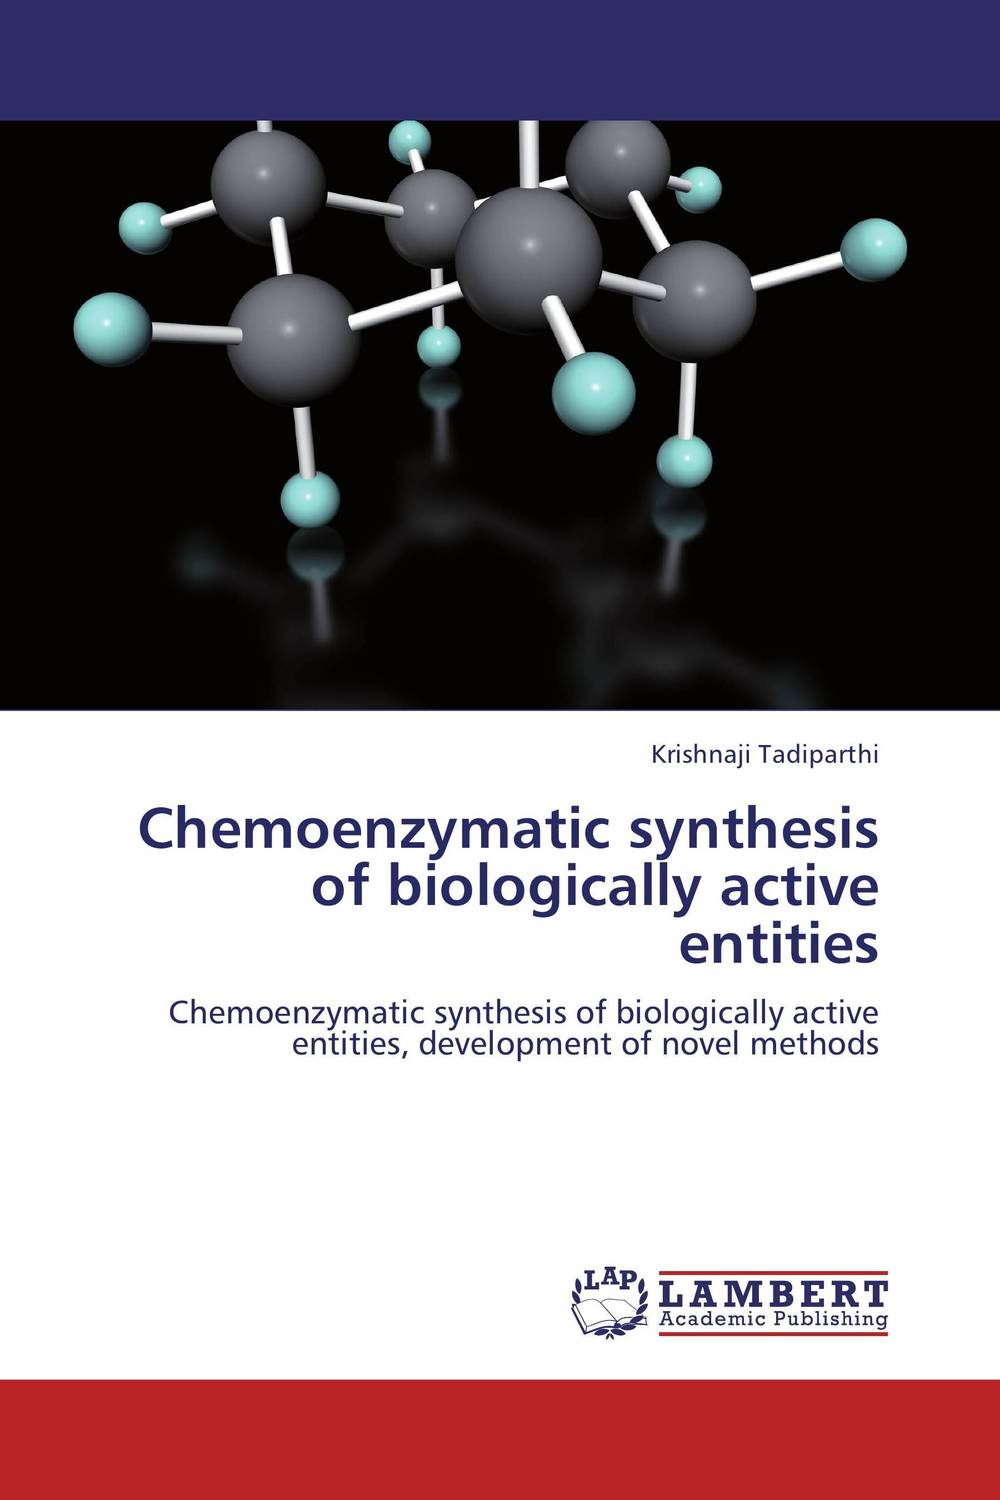 Chemoenzymatic synthesis of biologically active entities